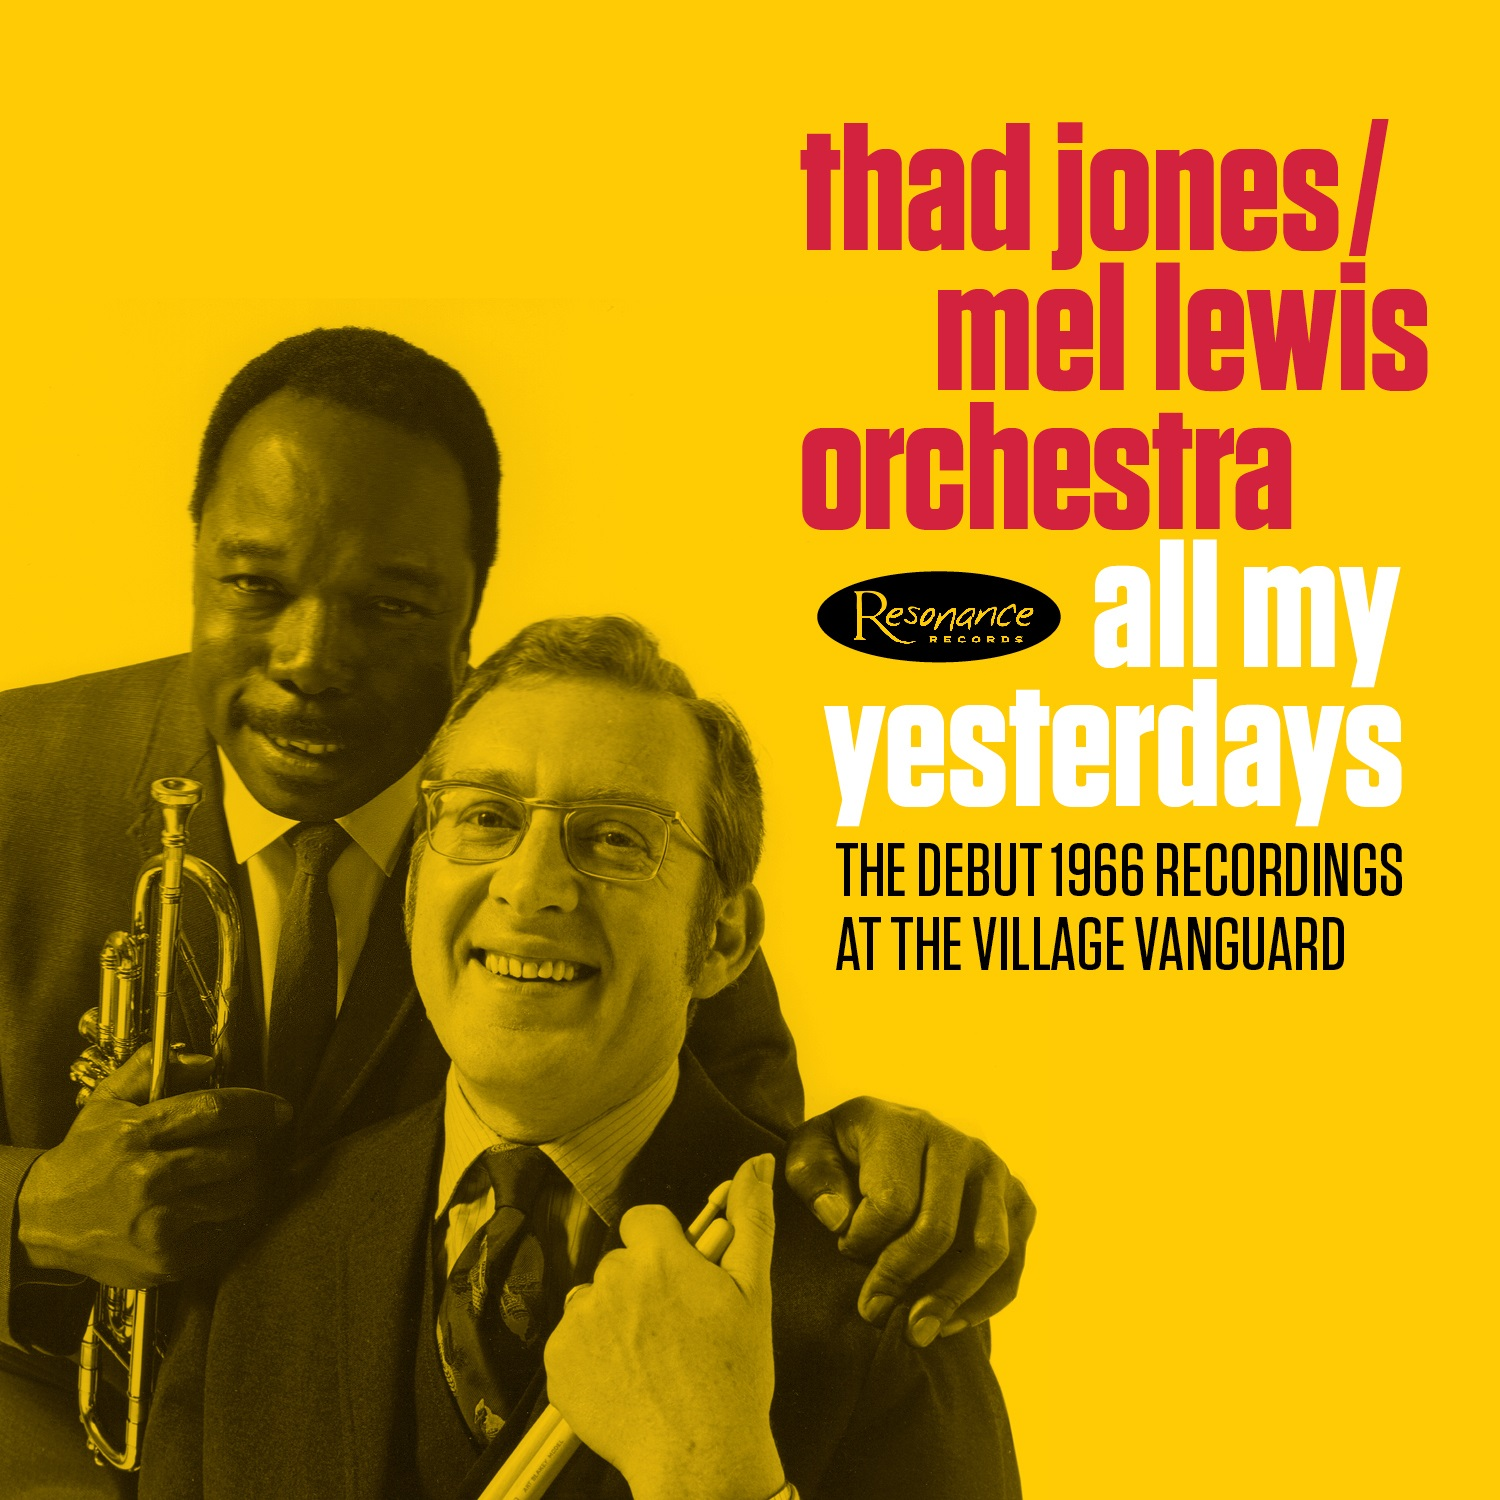 Thad Jones & Mel Lewis Orchestra - All My Yesterdays [RSD BF 2019]